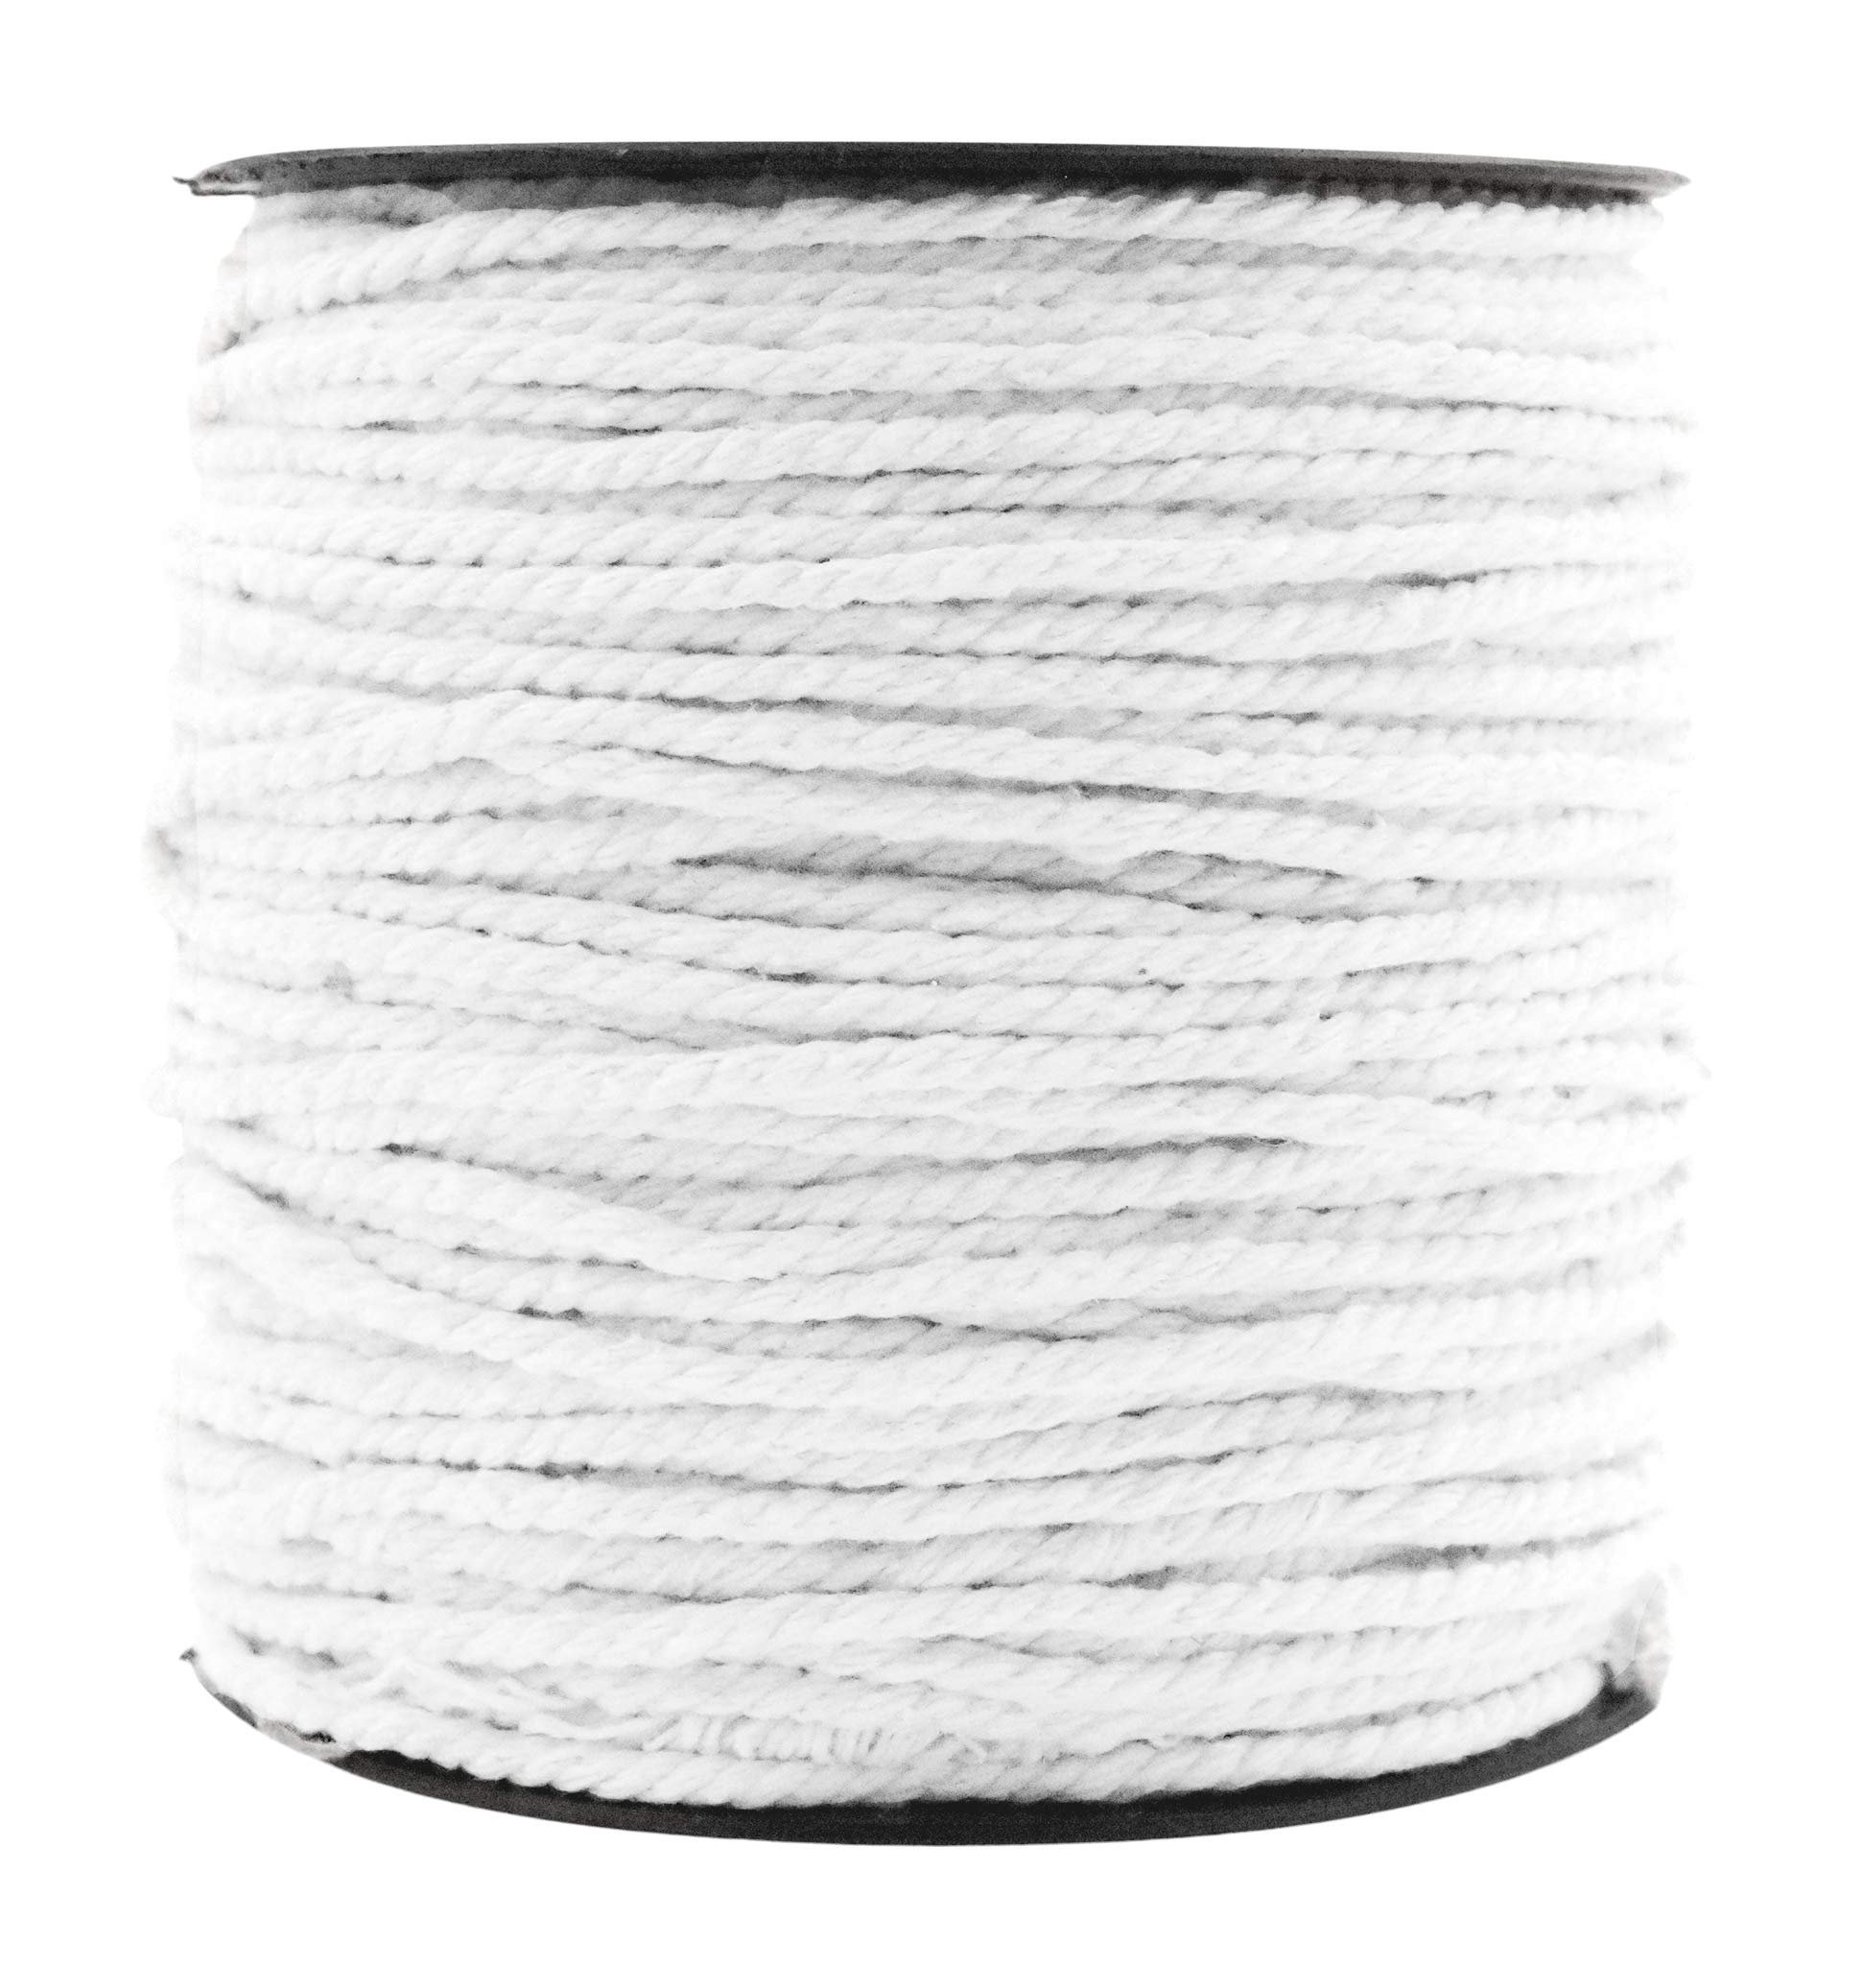 Macrame Cord Cotton Rope Macrame Supplies 3 Ply Twisted Macrame Rope String Yarn for Plant Hanger Wall Hanging Knitting Wedding Décor by Mandala Crafts White, 3mm 109 Yards